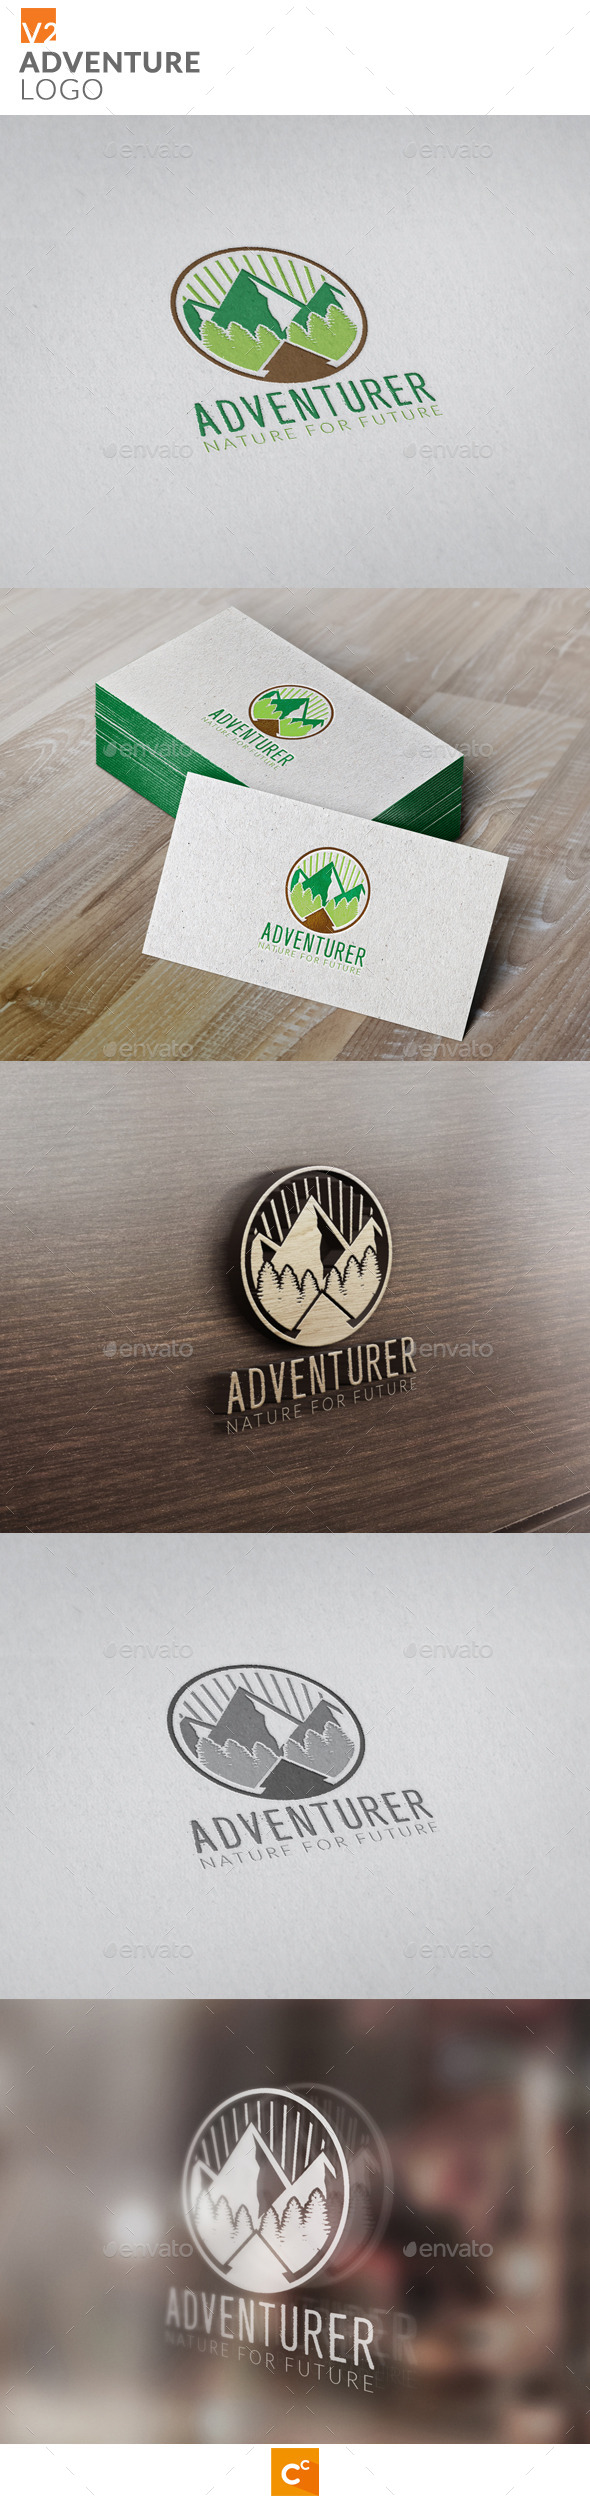 GraphicRiver Adventure Logo v2 9986369